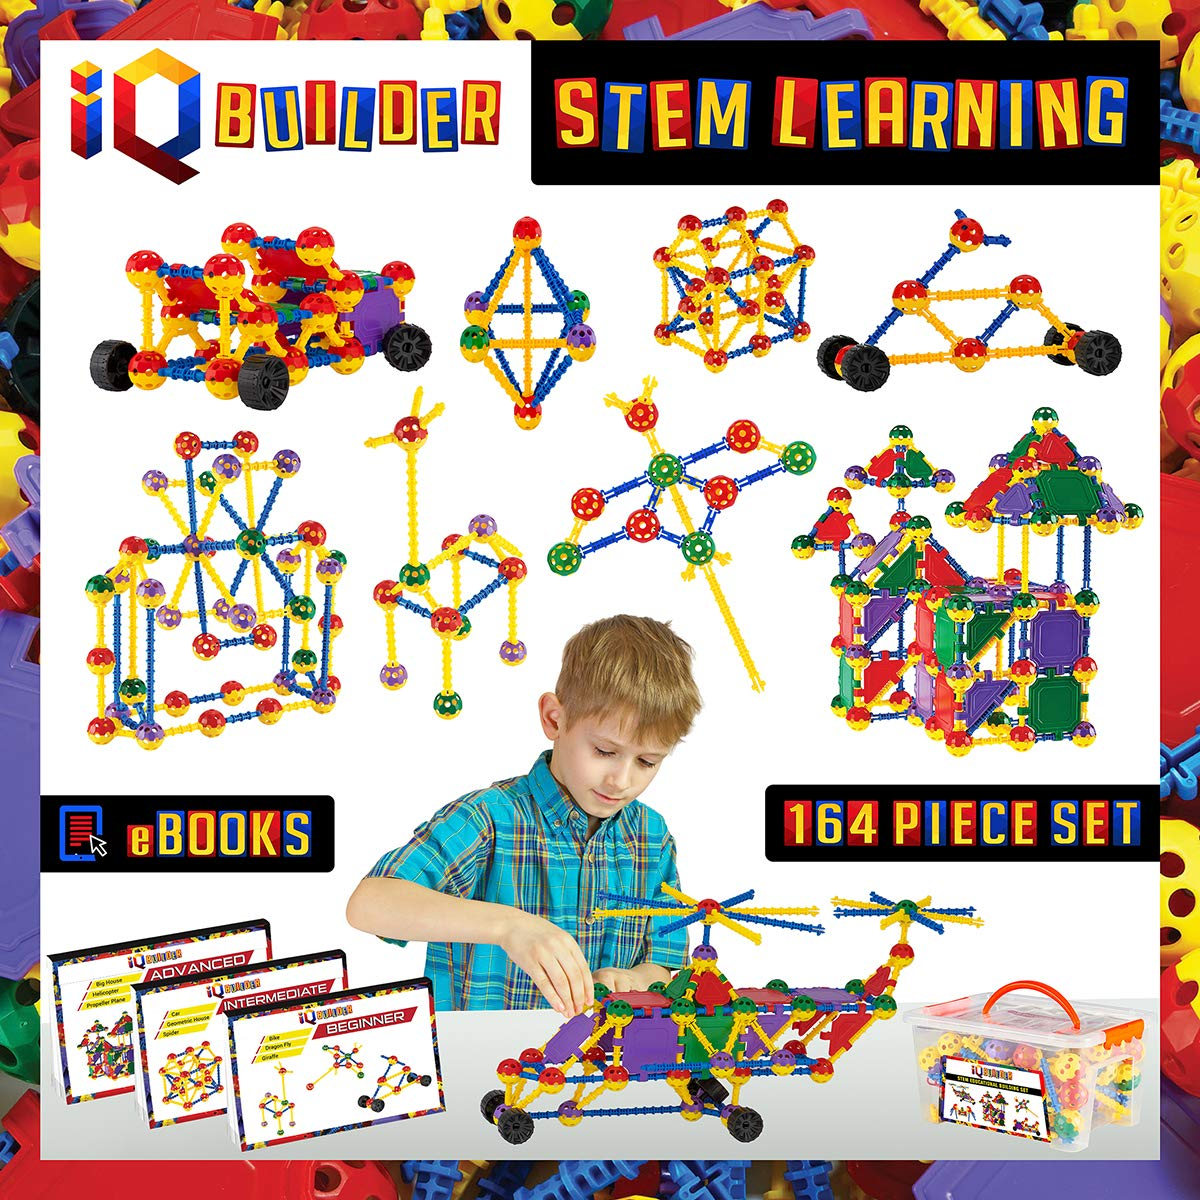 Review of IQ BUILDER | STEM Learning Toys | Creative Construction Engineering